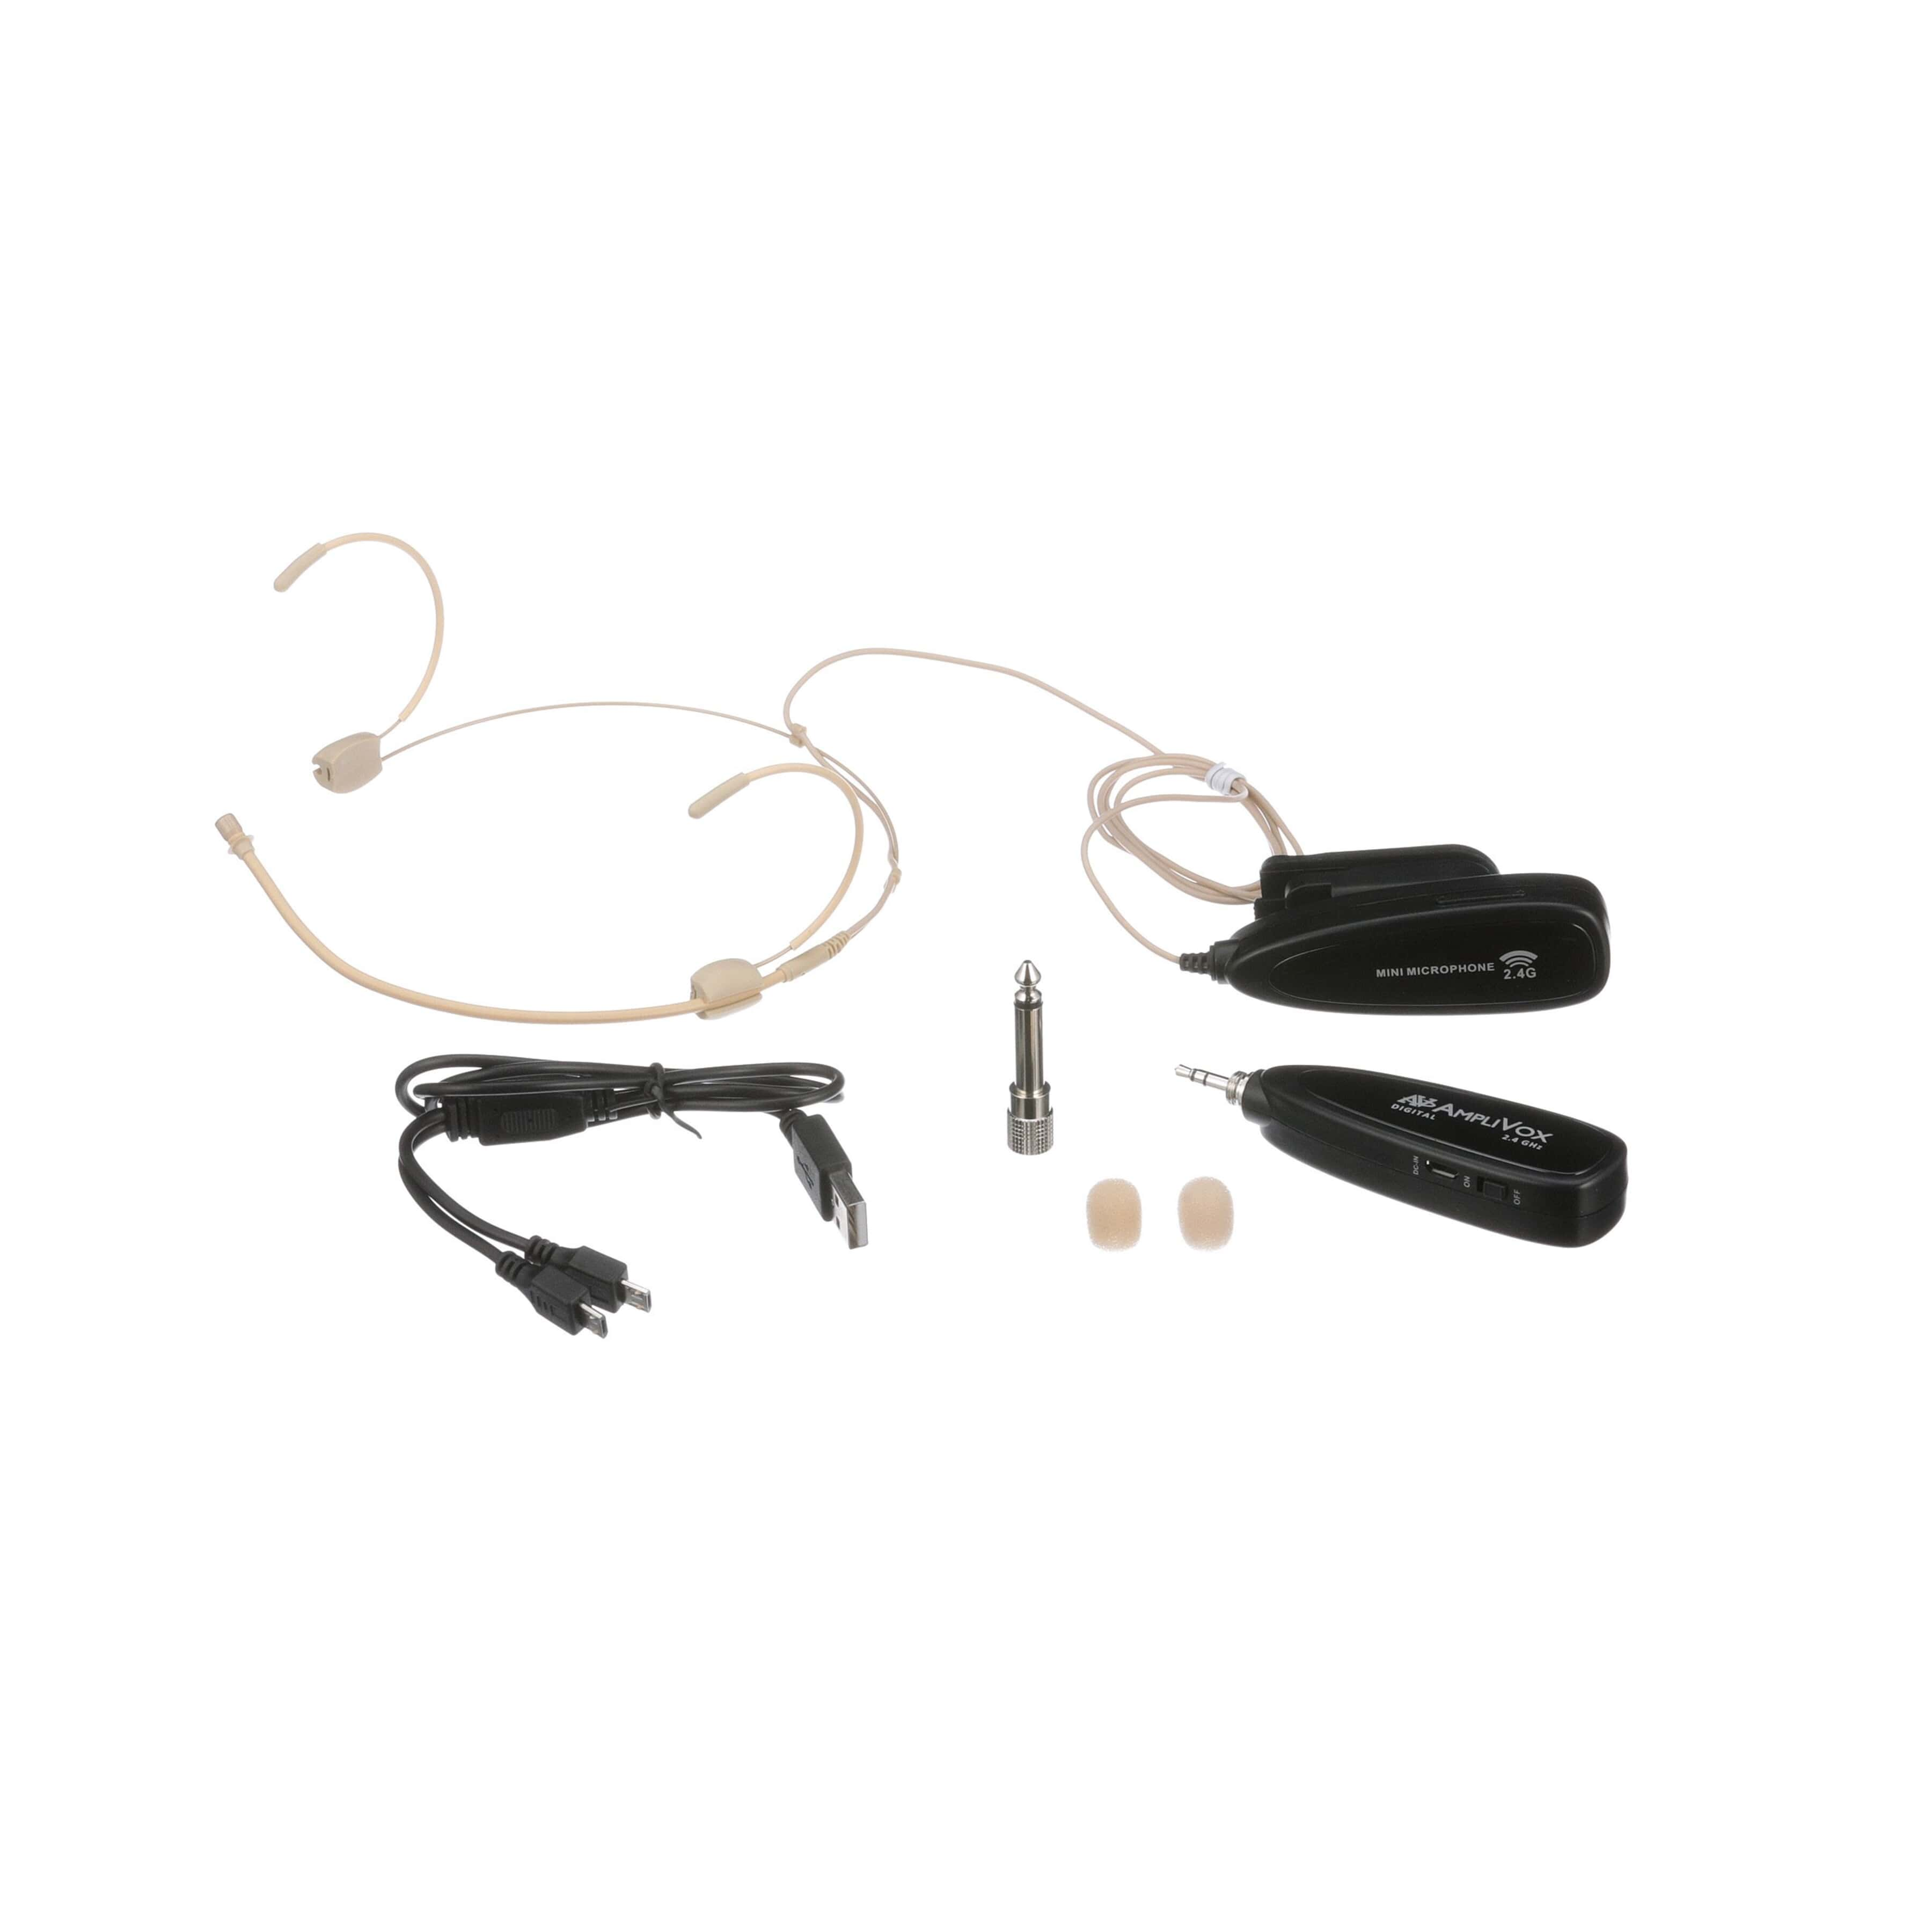 Classroom Audio System With Wireless Microphone Simple Circuit Loading